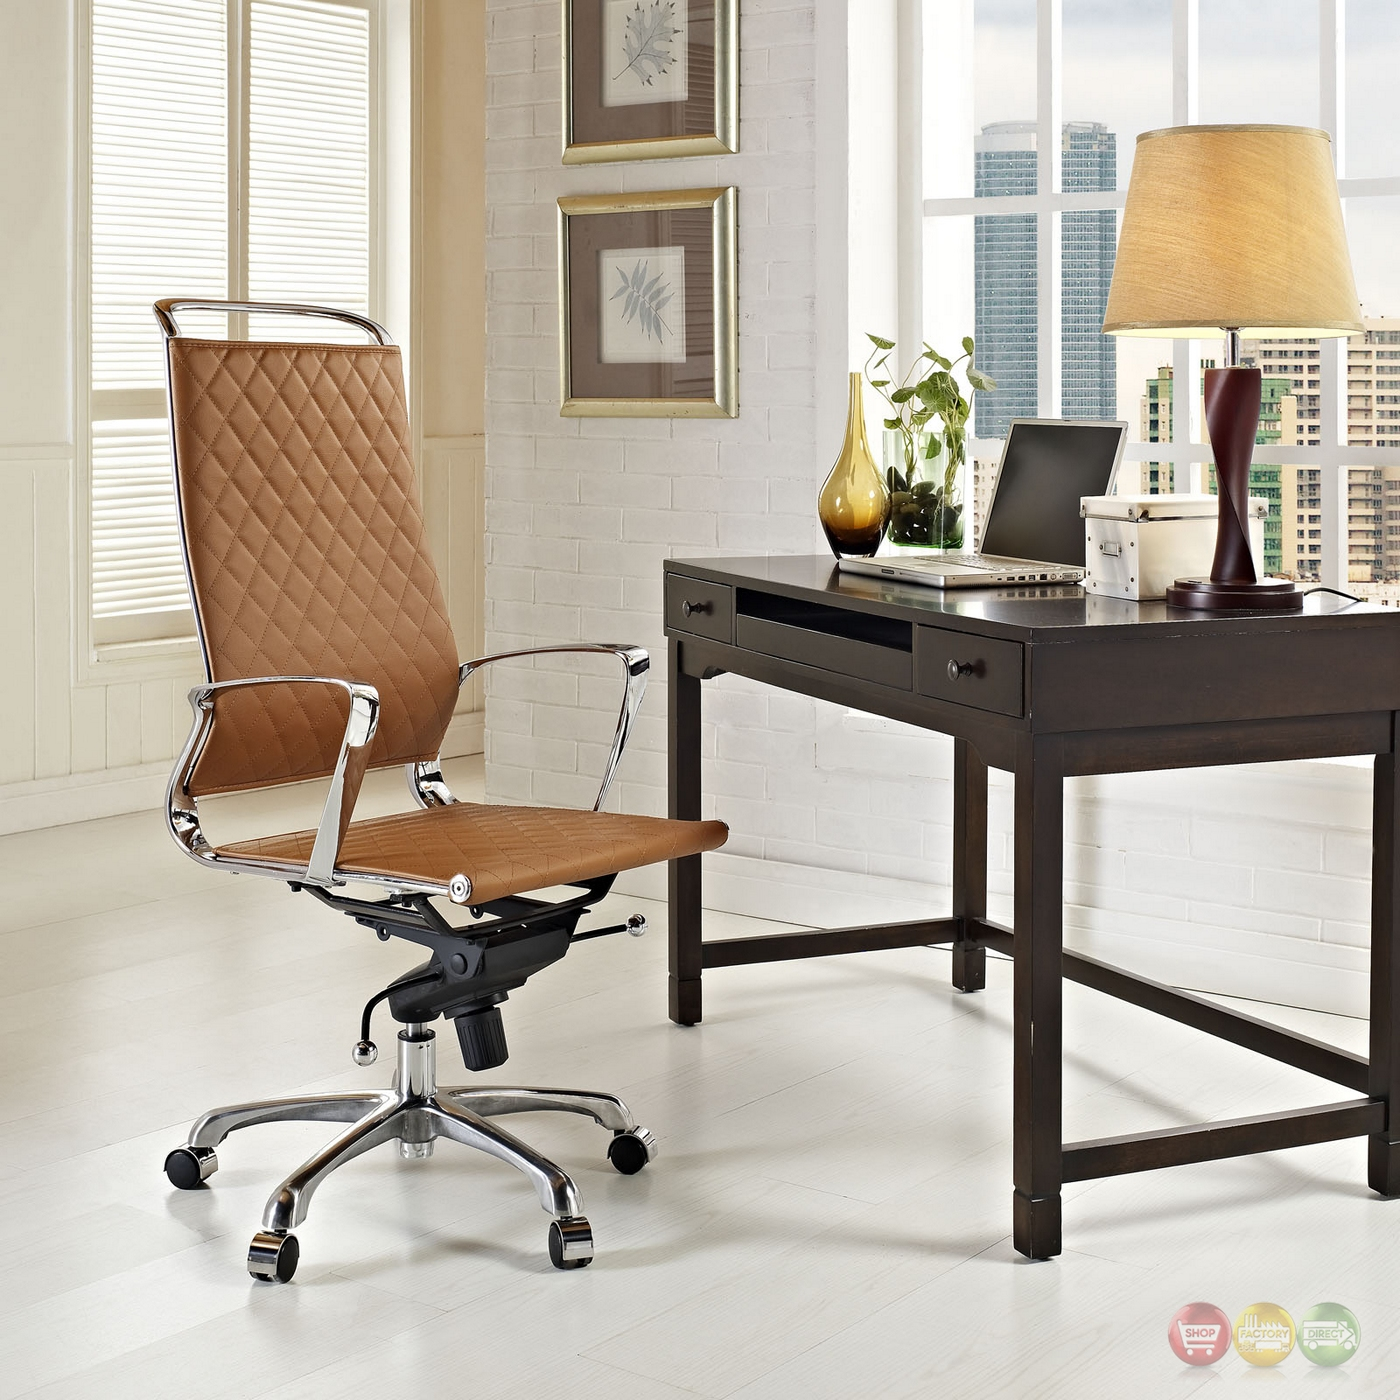 Tan Office Chair Vibe Modern High Back Leather Adjustable Office Chair W